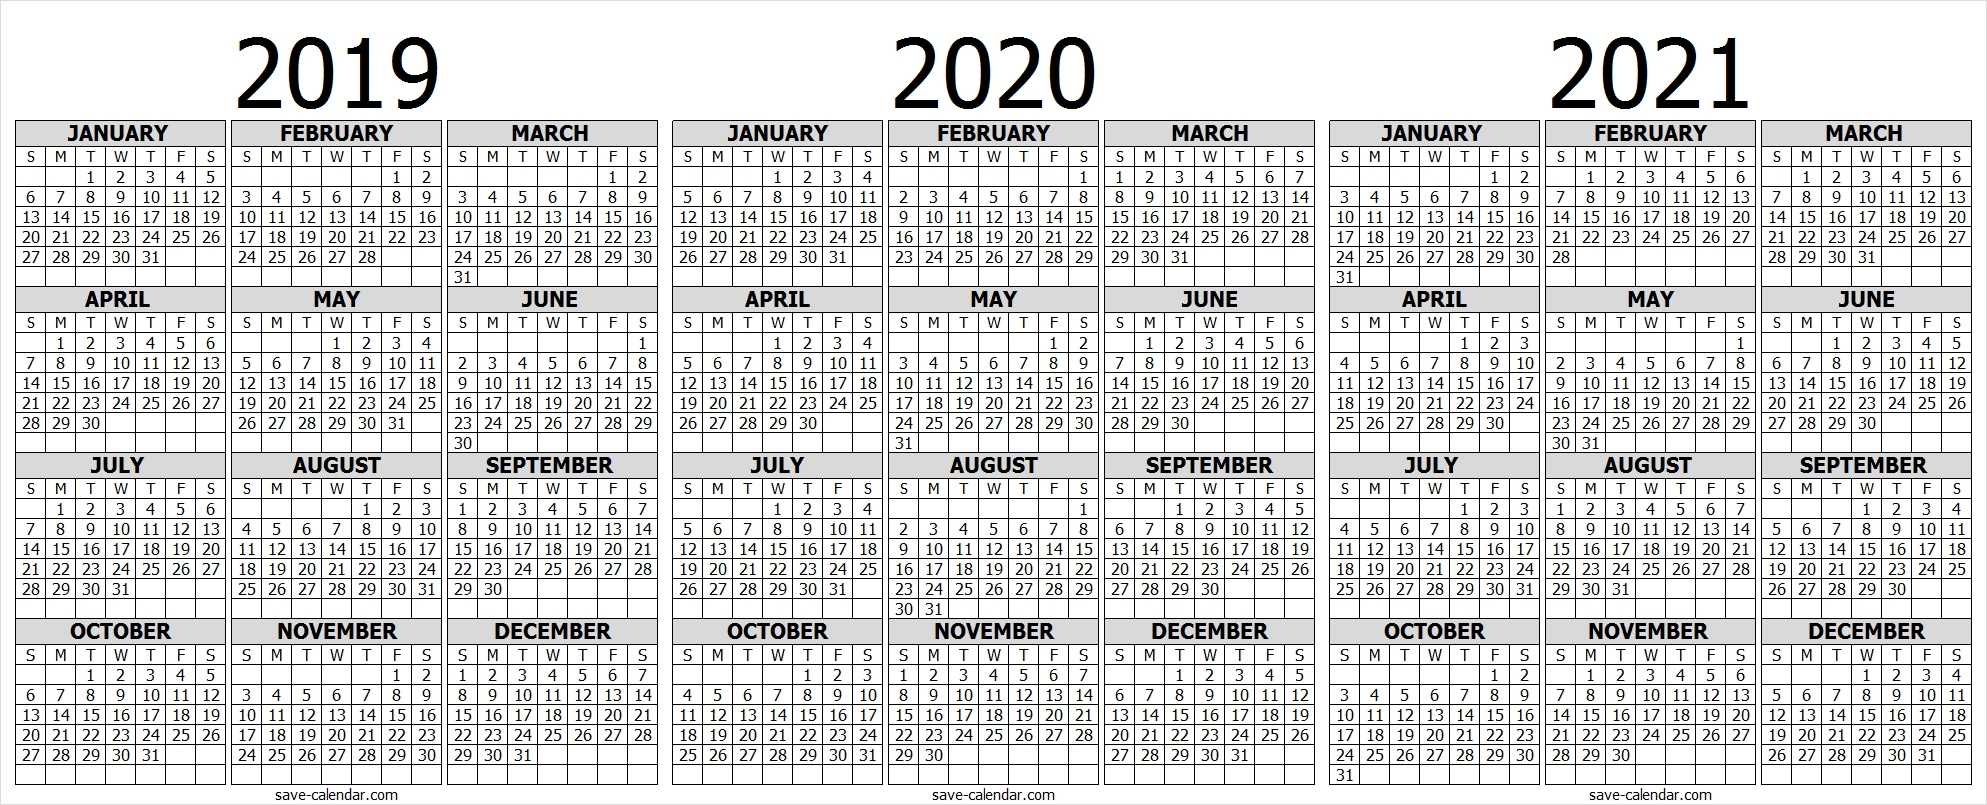 Calendar 2021 Template Free Simple For Saving The Time